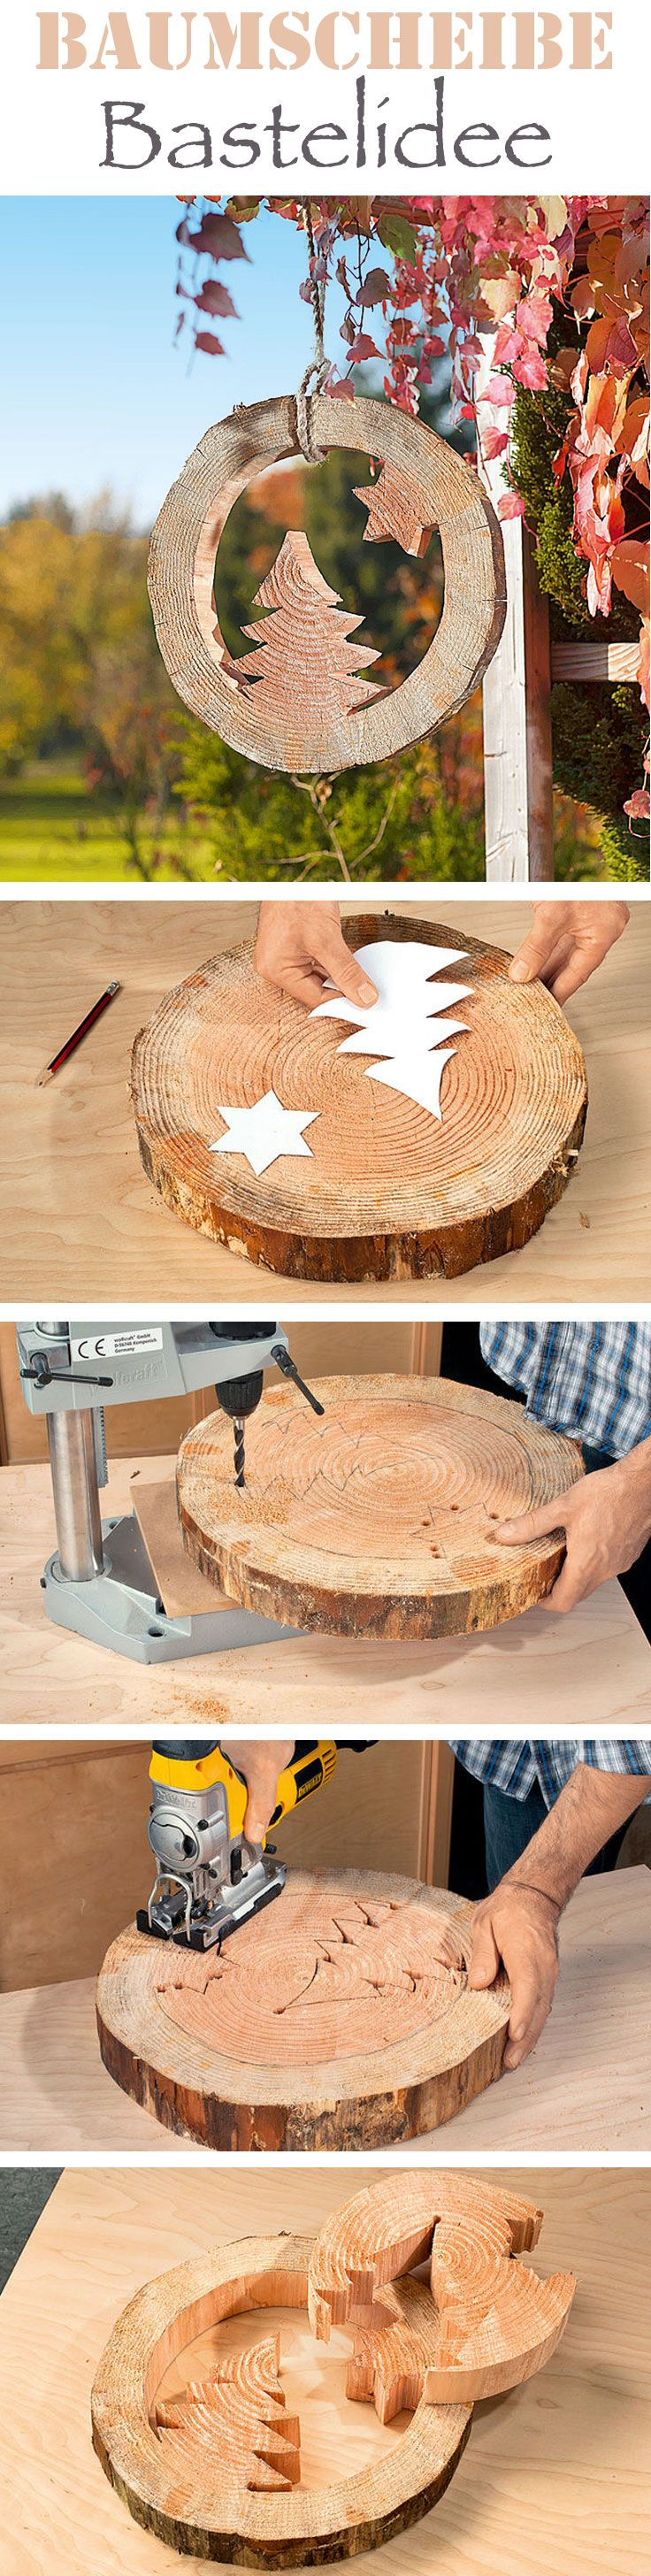 25+ best ideas about Baumscheibe on Pinterest  Holz